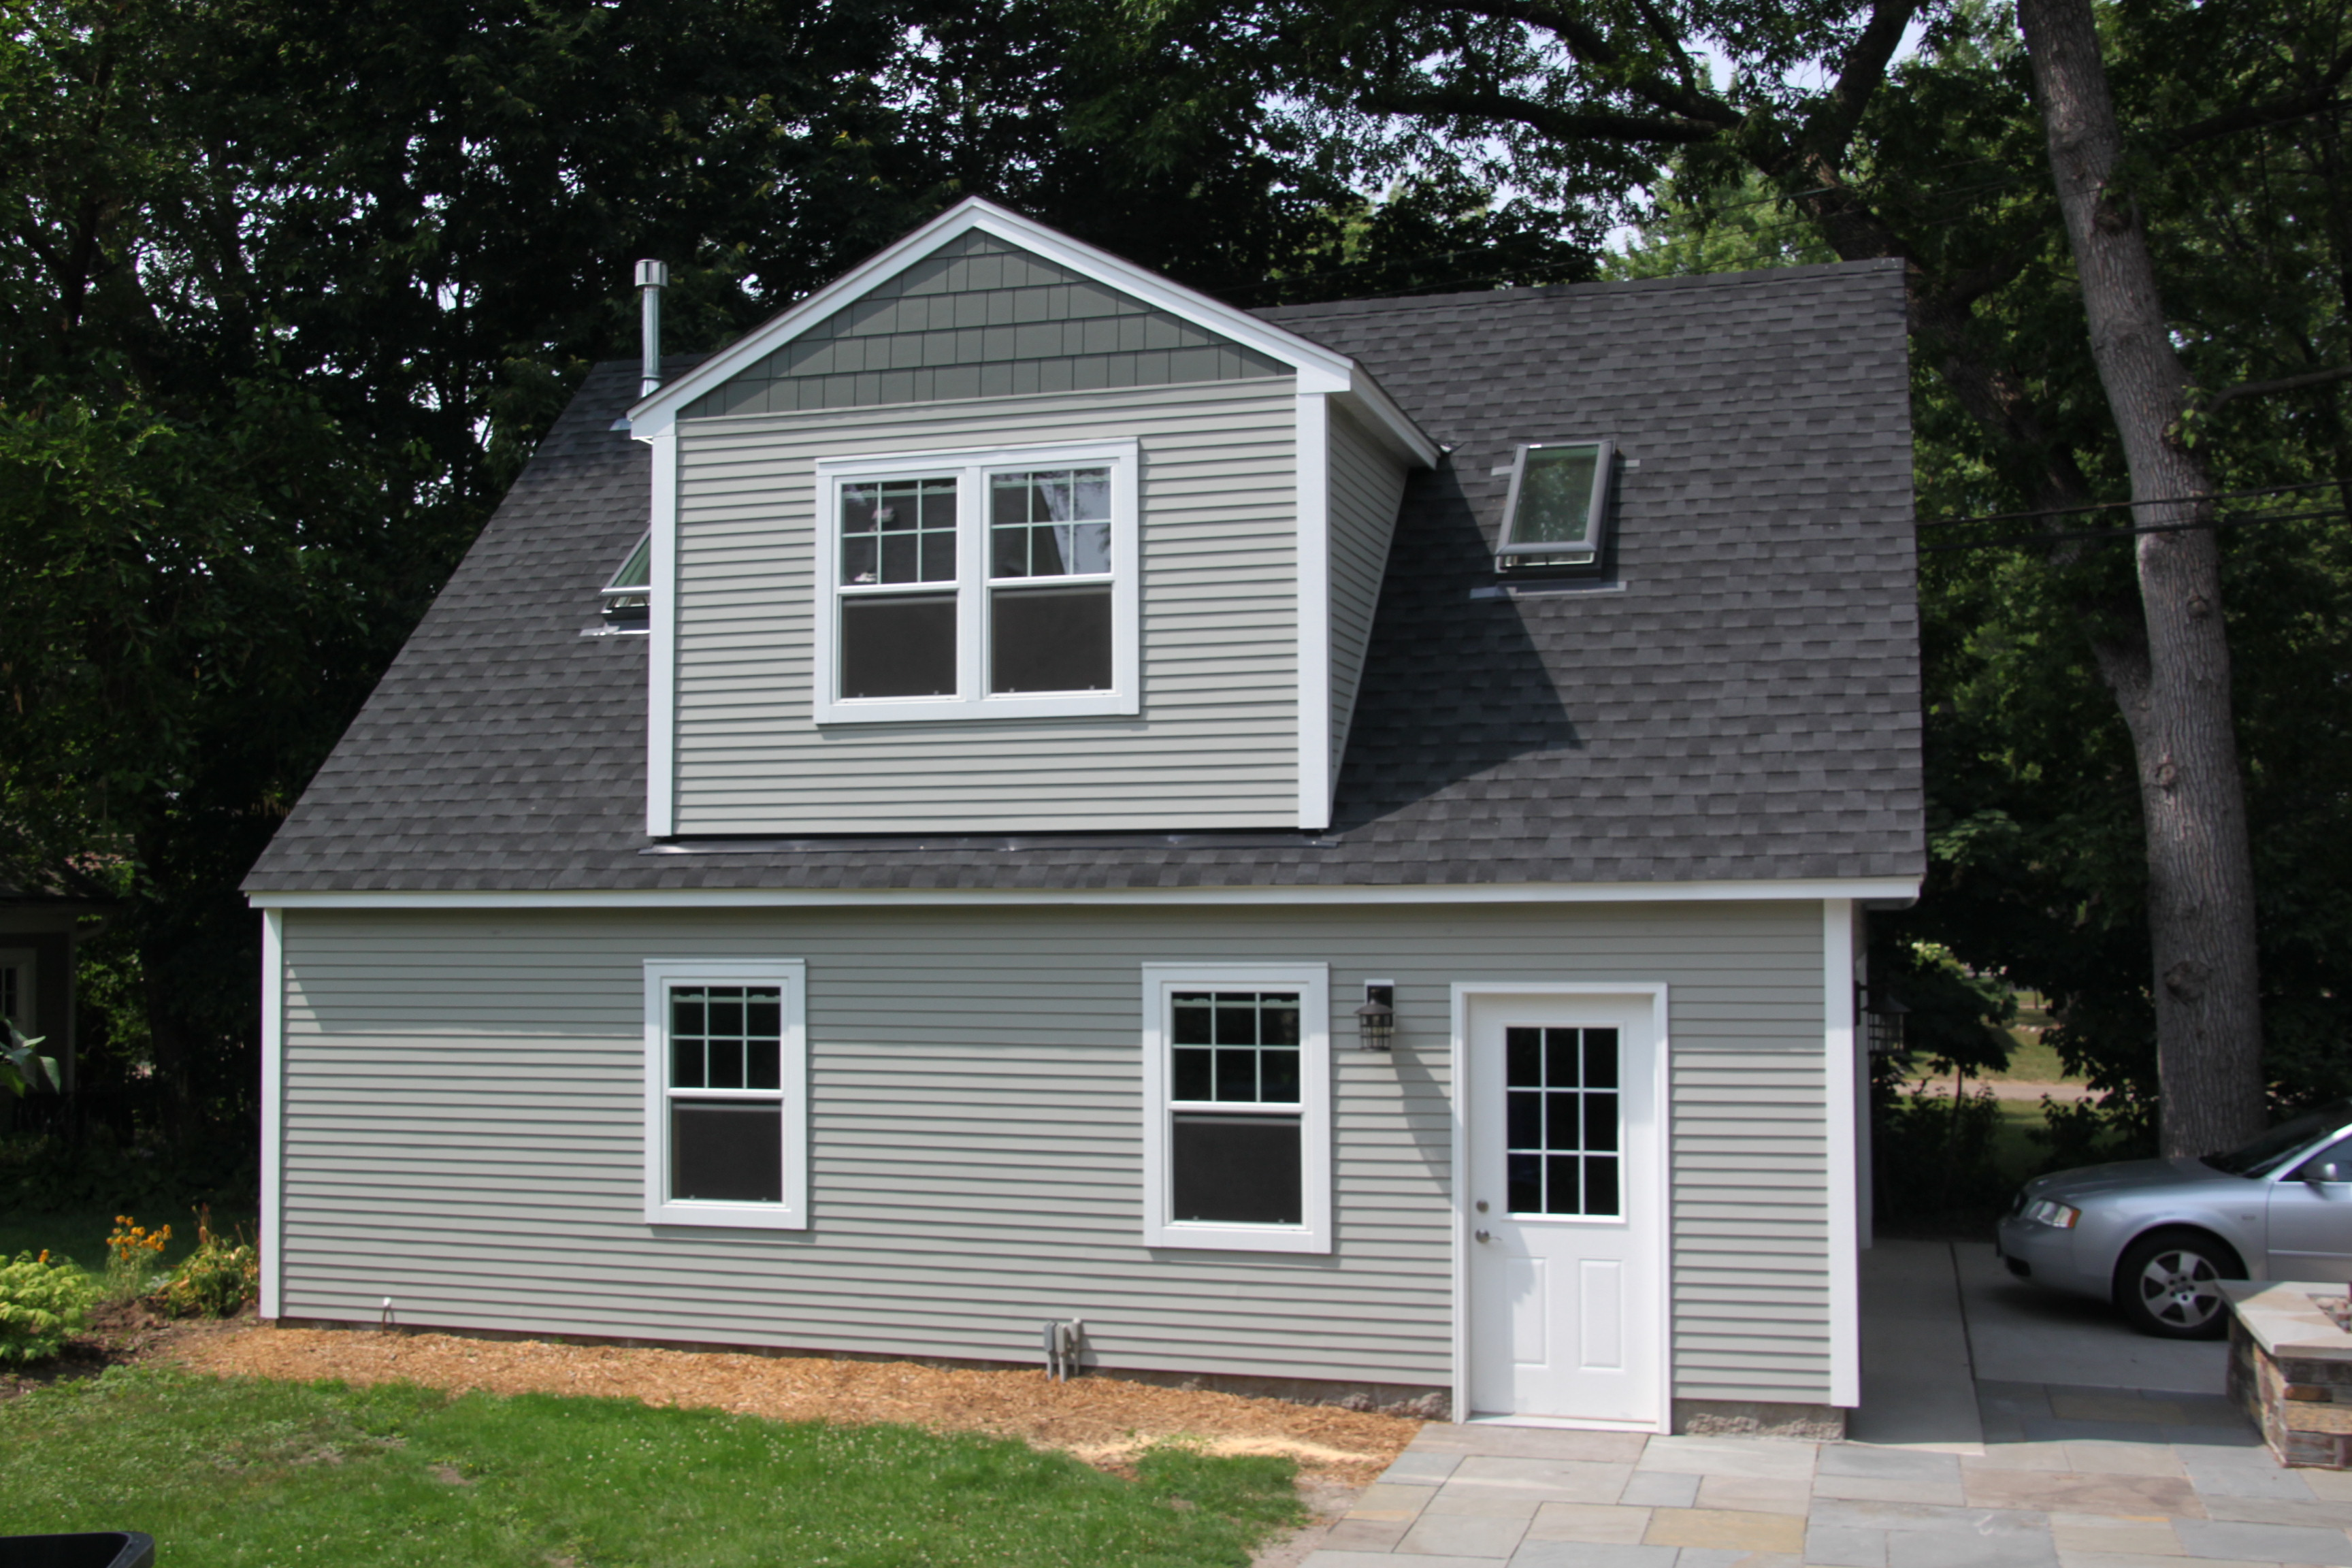 2 car 2 story garage using attic trusses and dormer for 2 story 2 car garage cost